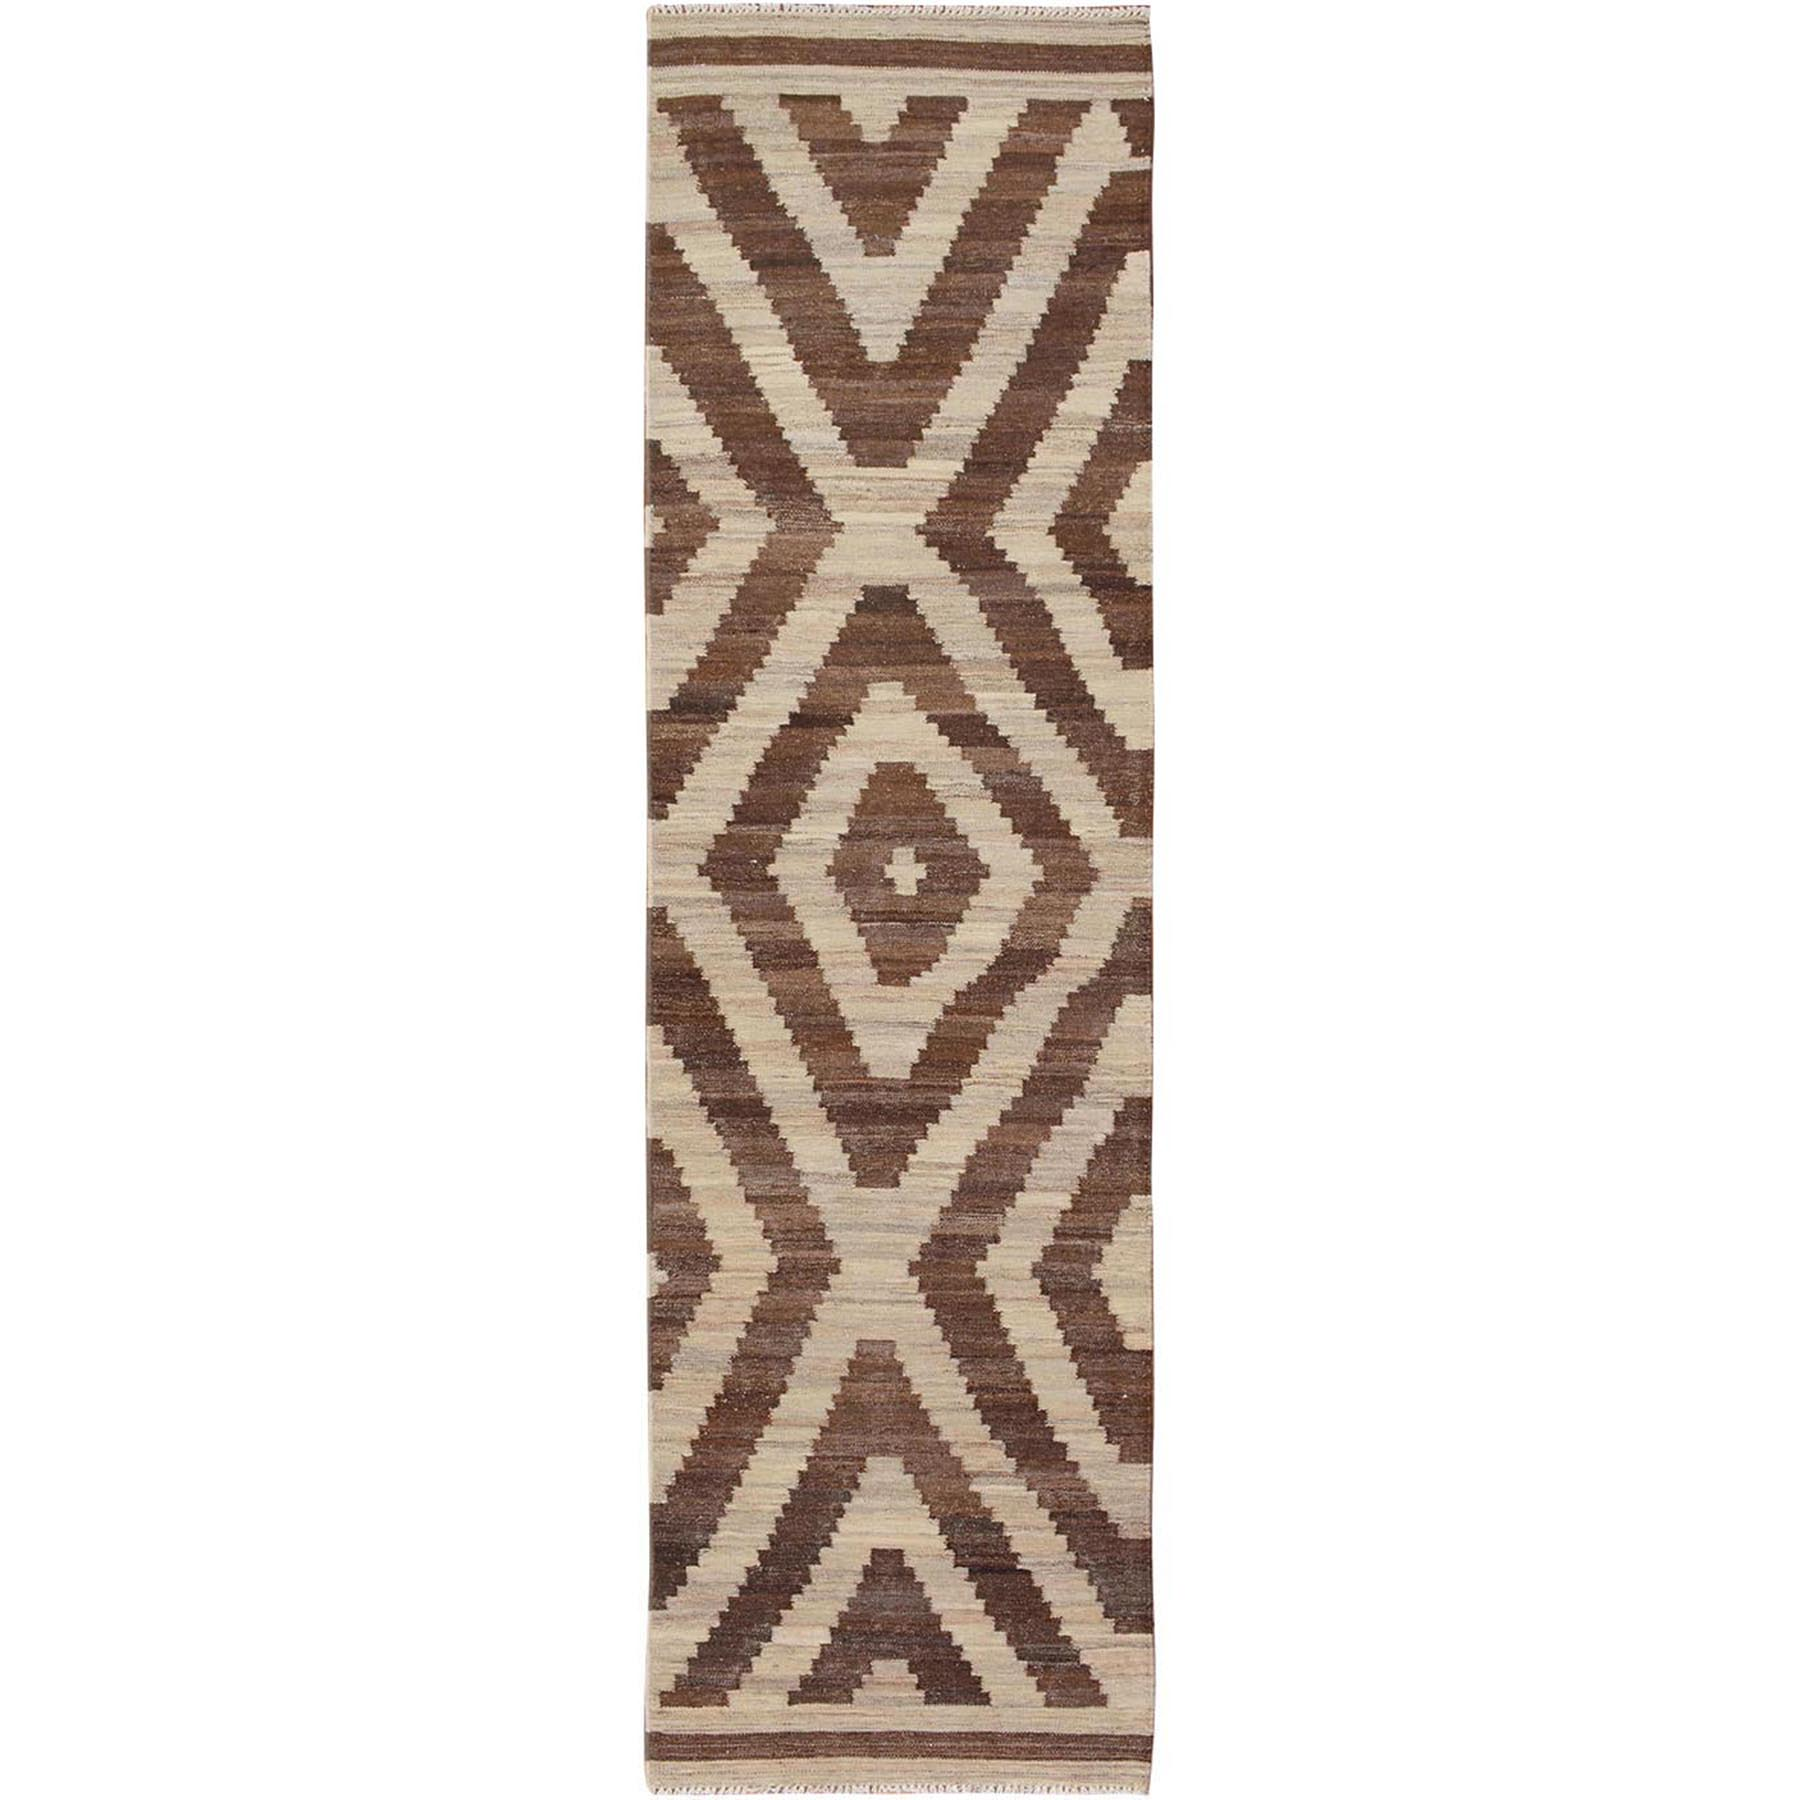 "2'8""x9'10"" Brown Reversible Afghan Kilim Geometric Design Runner Pure Wool Hand Woven Rug"